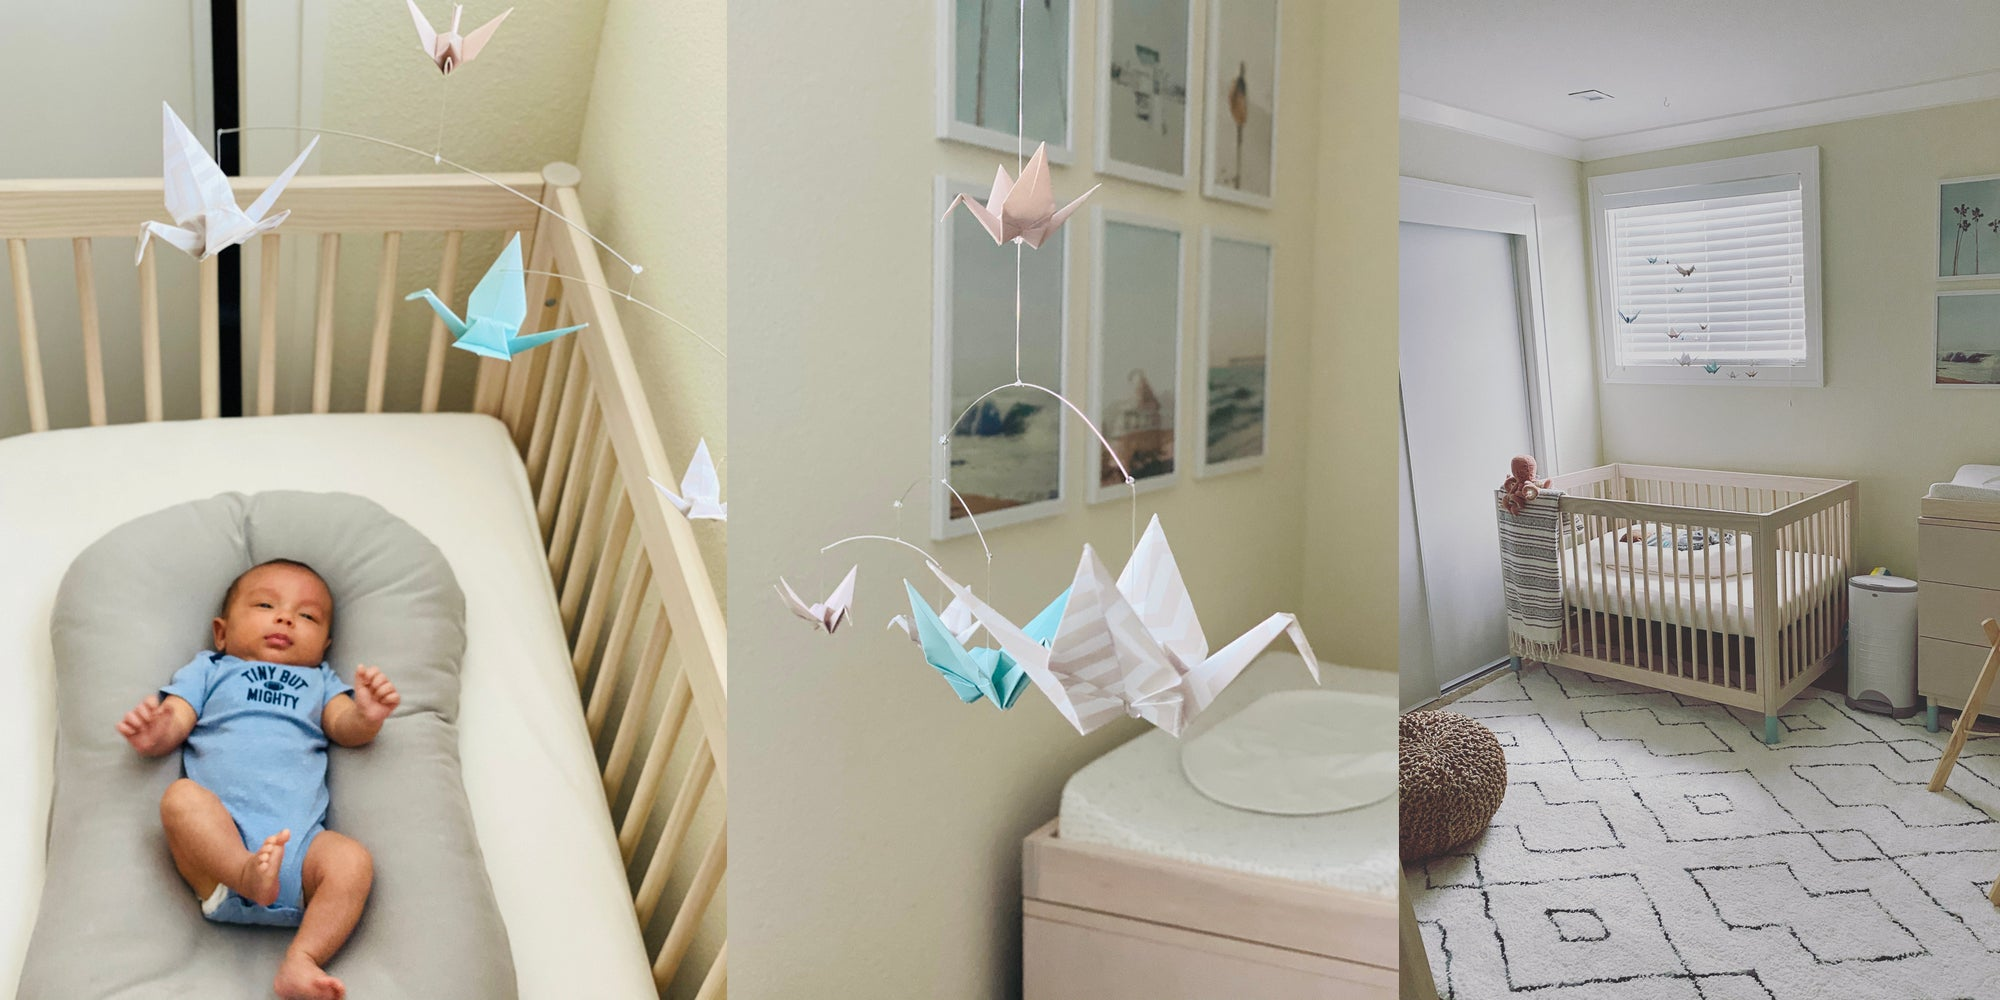 Beachy themed baby nursery with a soothing origami paper crane mobile hanging above the crib.